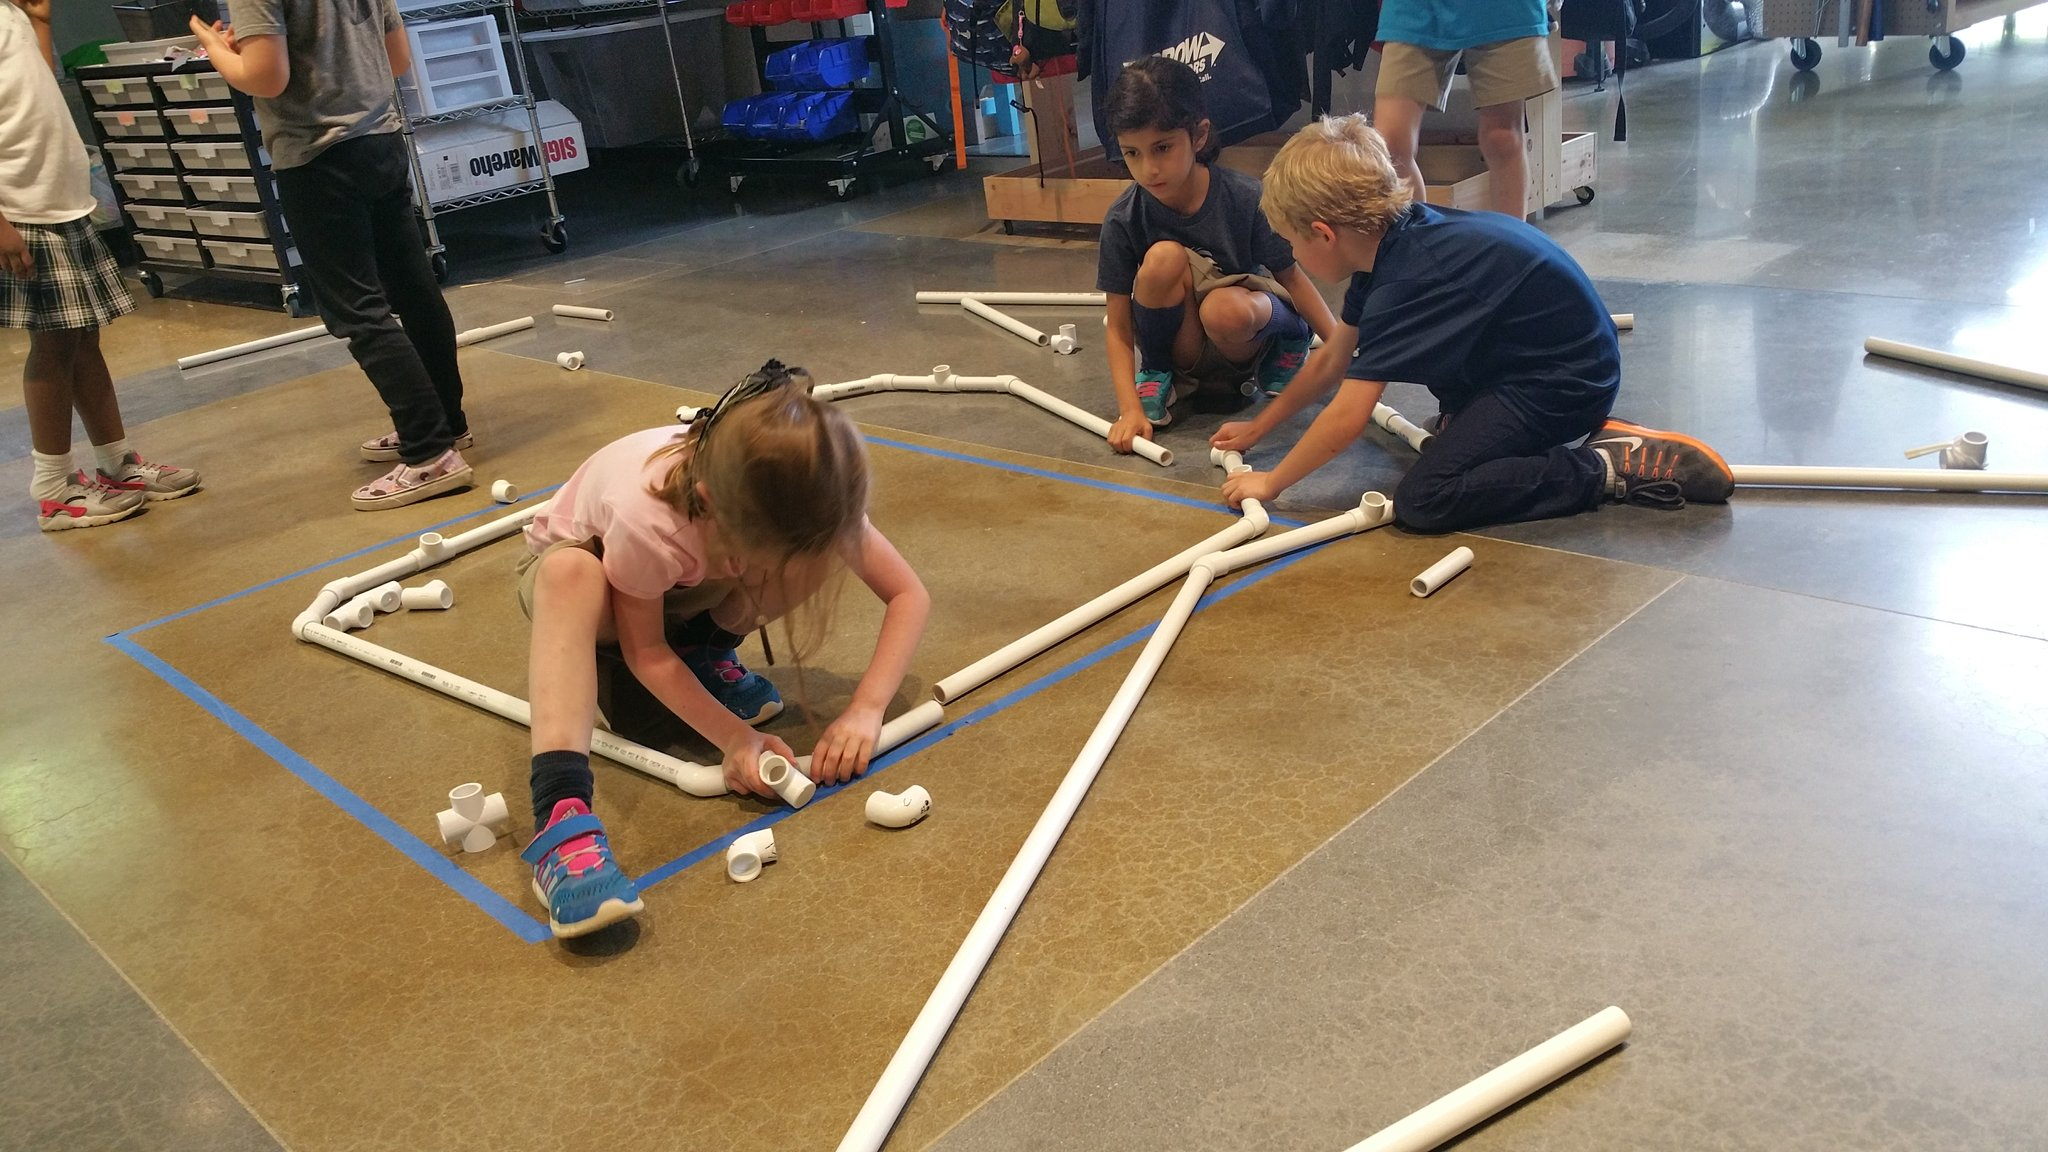 """It goes elbow-tee-elbow!"" #kidquote @Meghan_Fedor's Ks build the base of their teepee-shaped comfy, cozy nook #MakerEd #elemaker #MVPSchool https://t.co/97srkUqkgH"